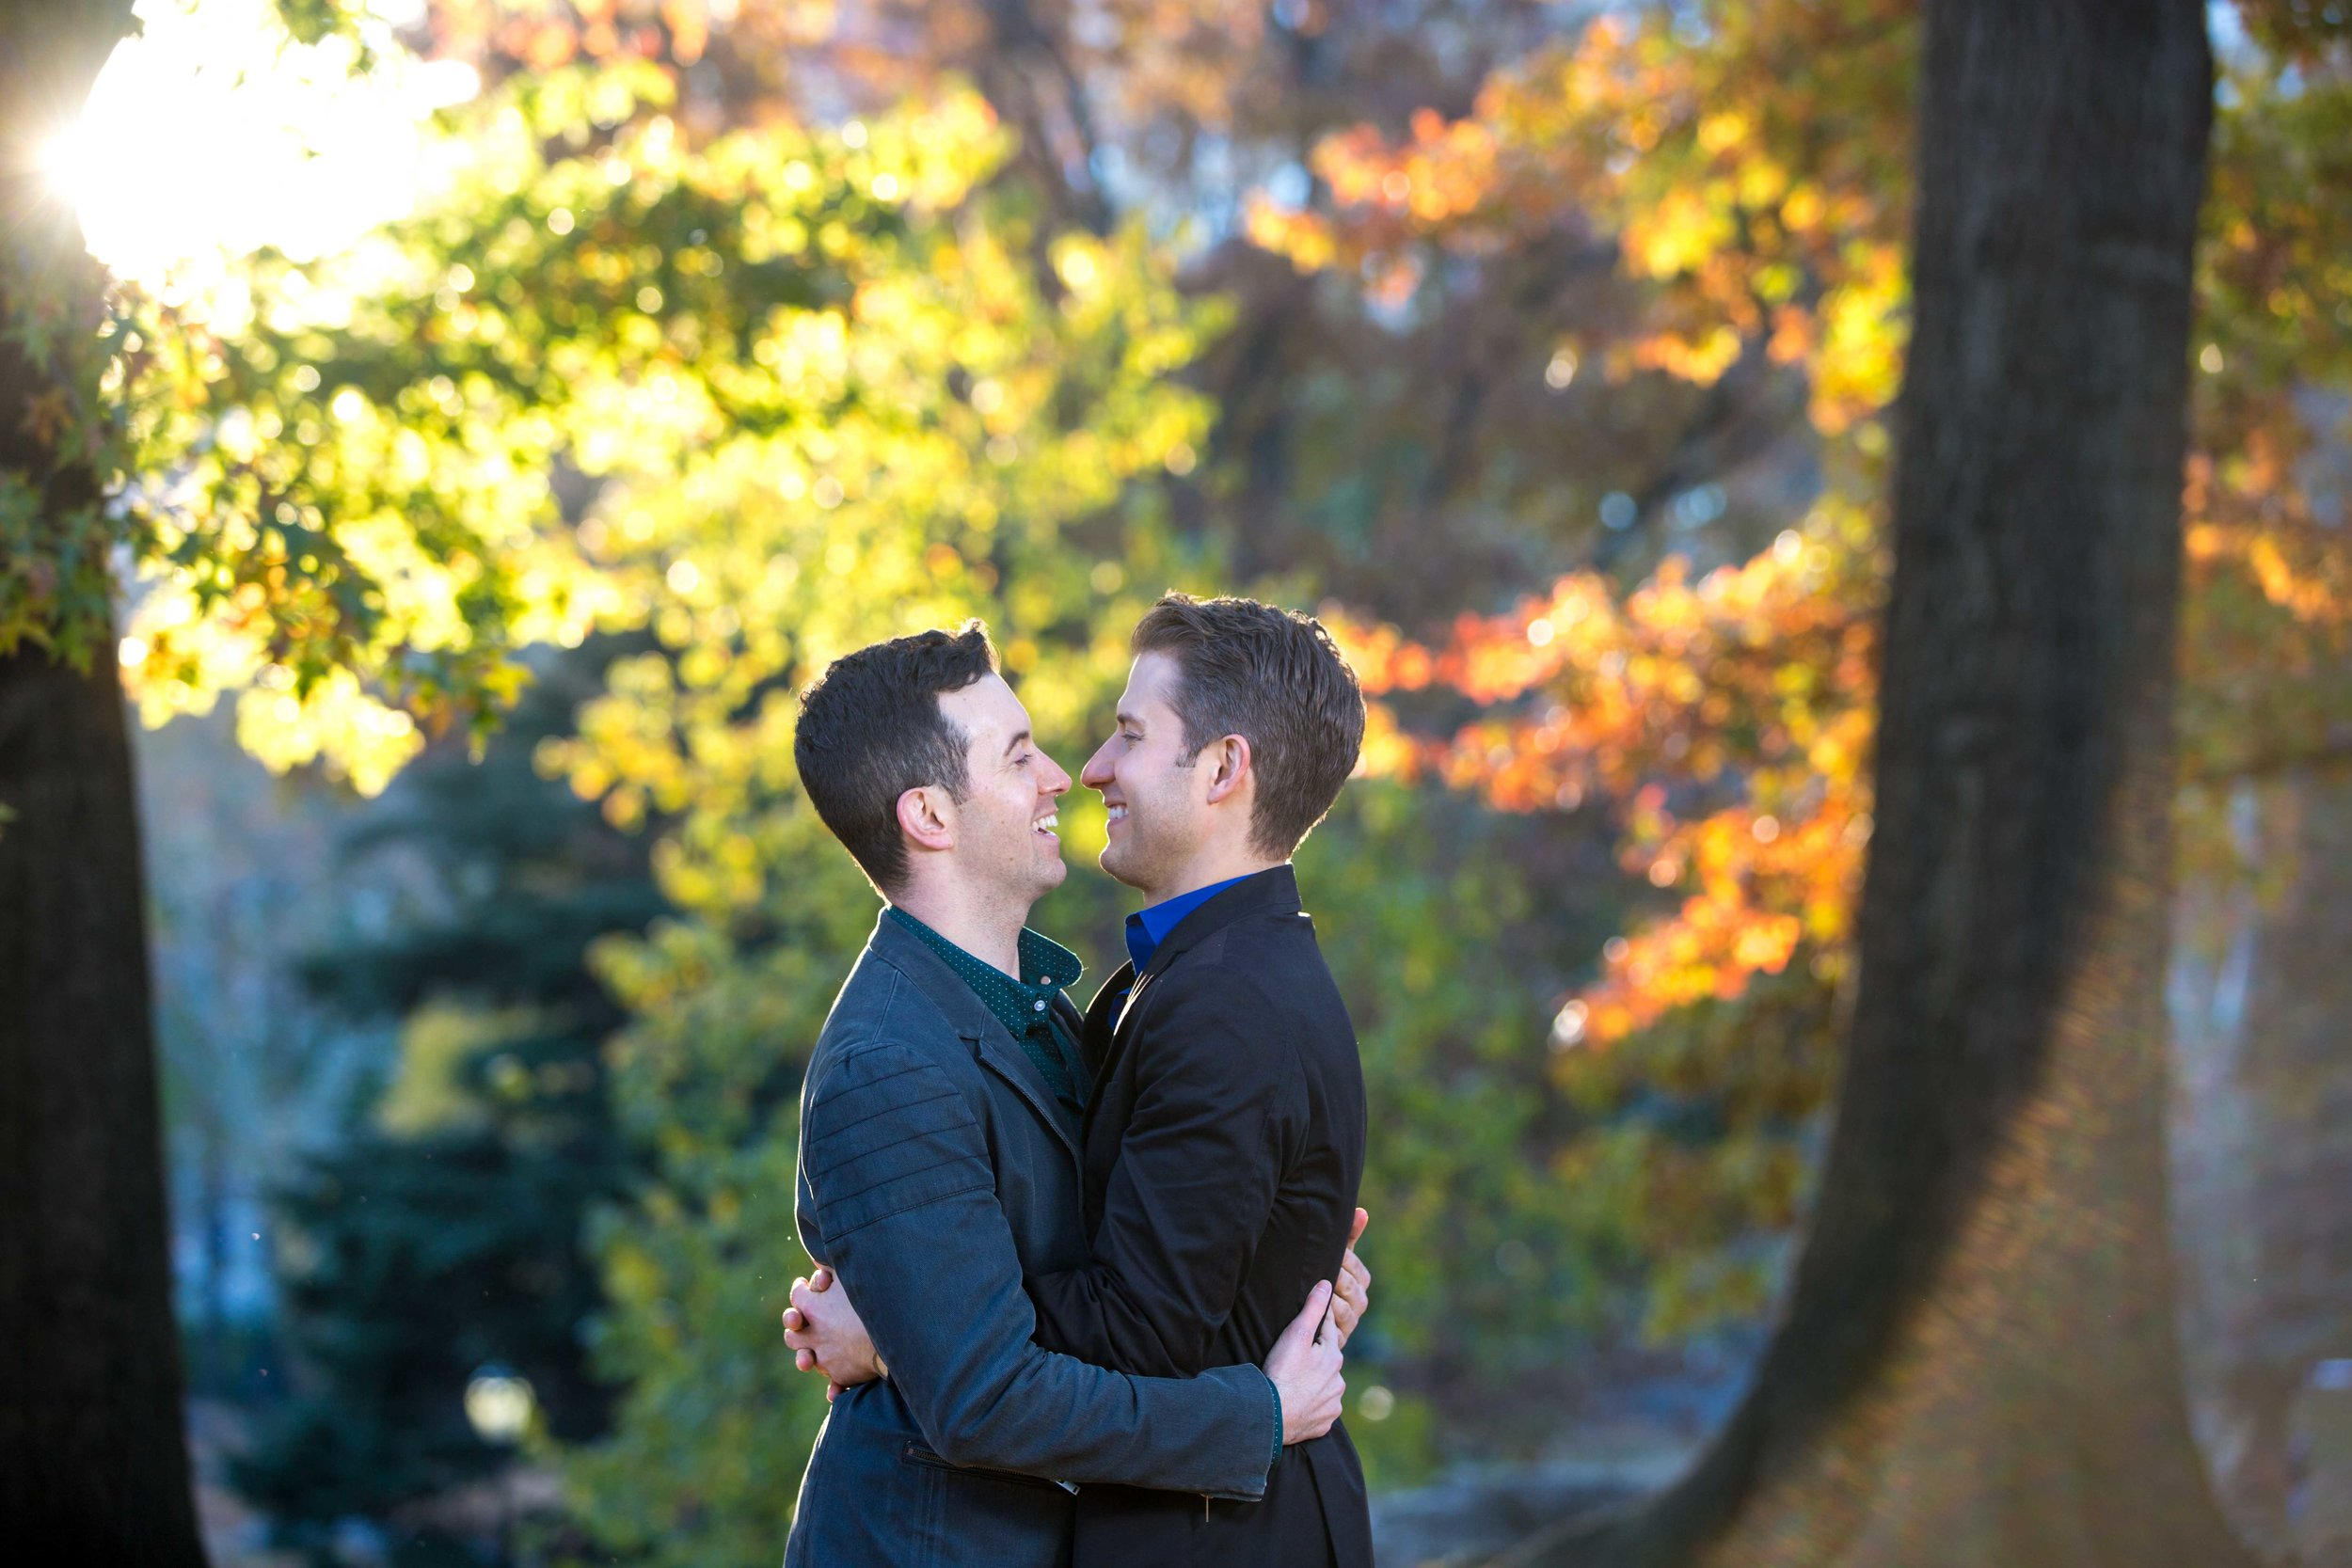 NYC Engagement Upper West Side Same Sex Gay Wedding Photographer-1.jpg